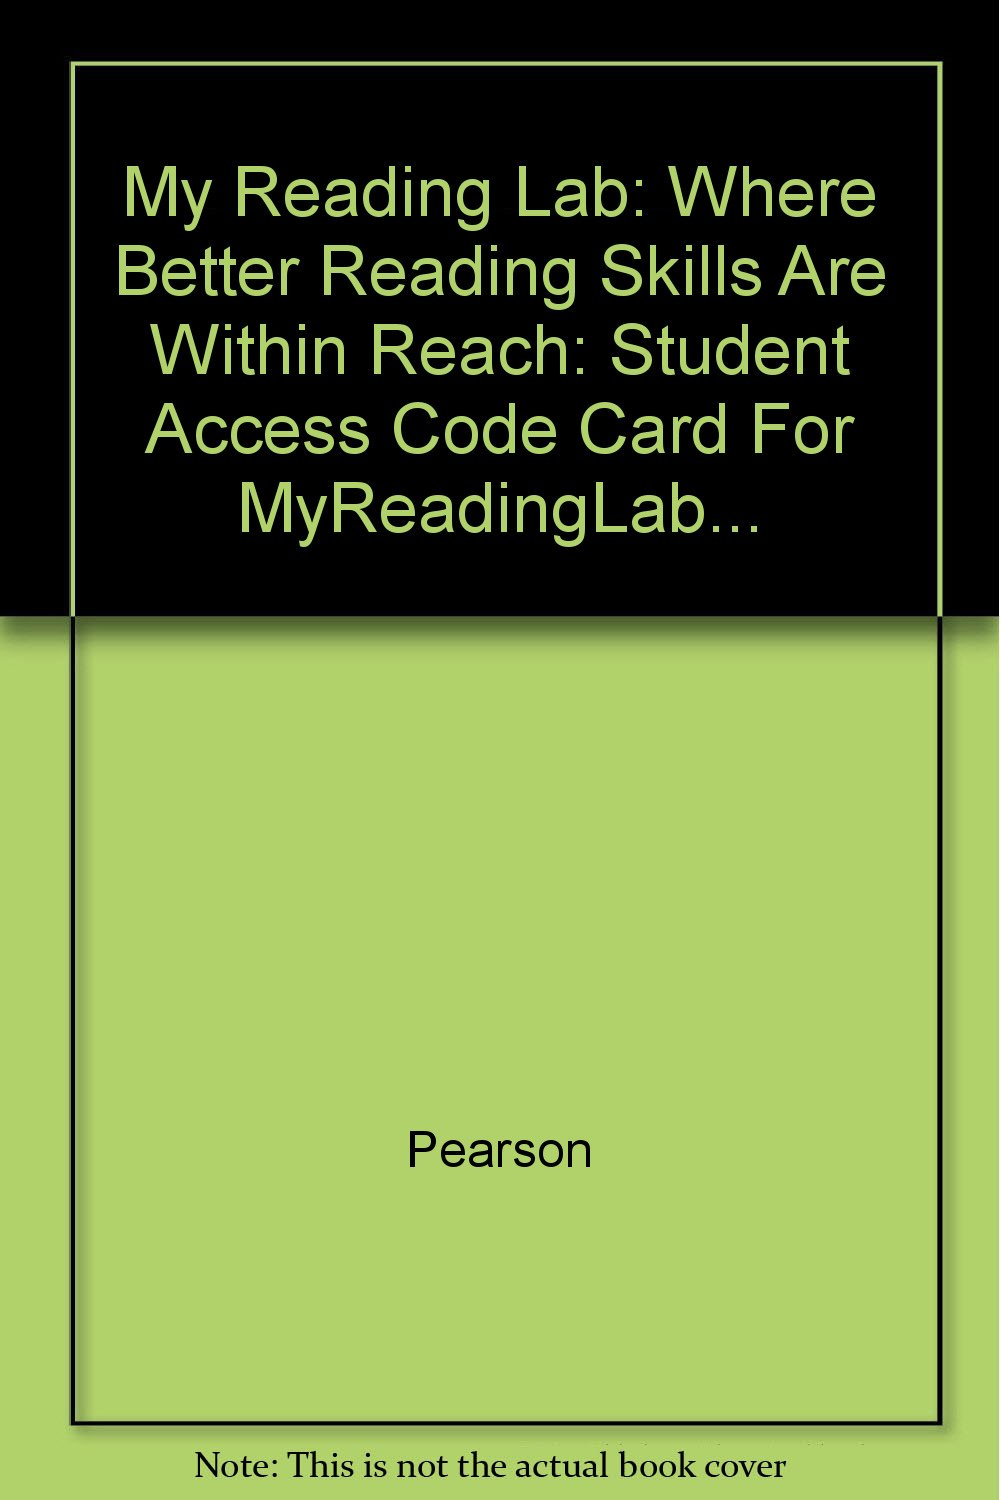 My Reading Lab: Where Better Reading Skills Are Within Reach: Student Access Code Card For MyReadingLab... pdf